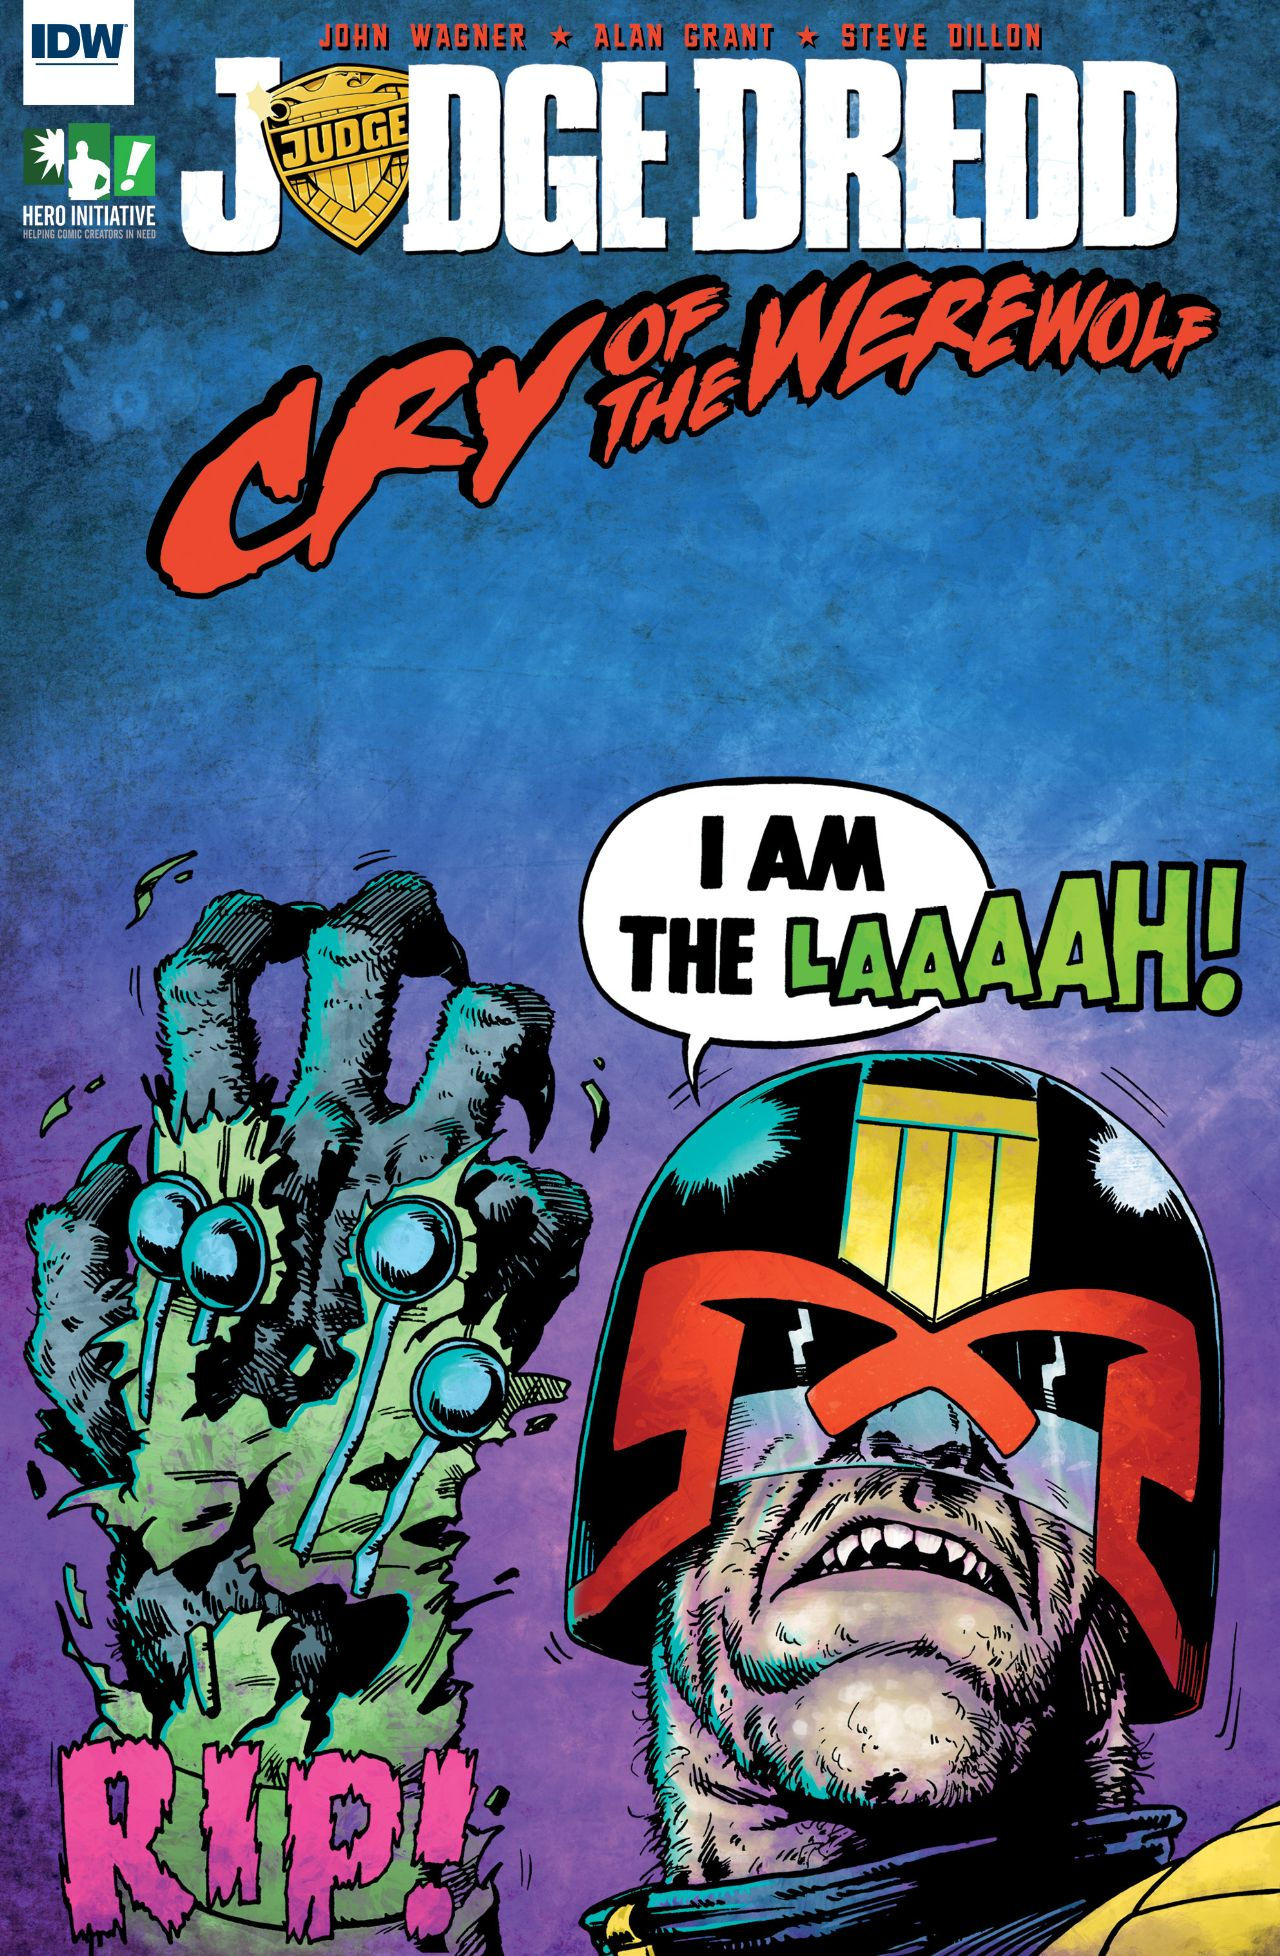 Judge Dredd: Cry of the Werewolf Review